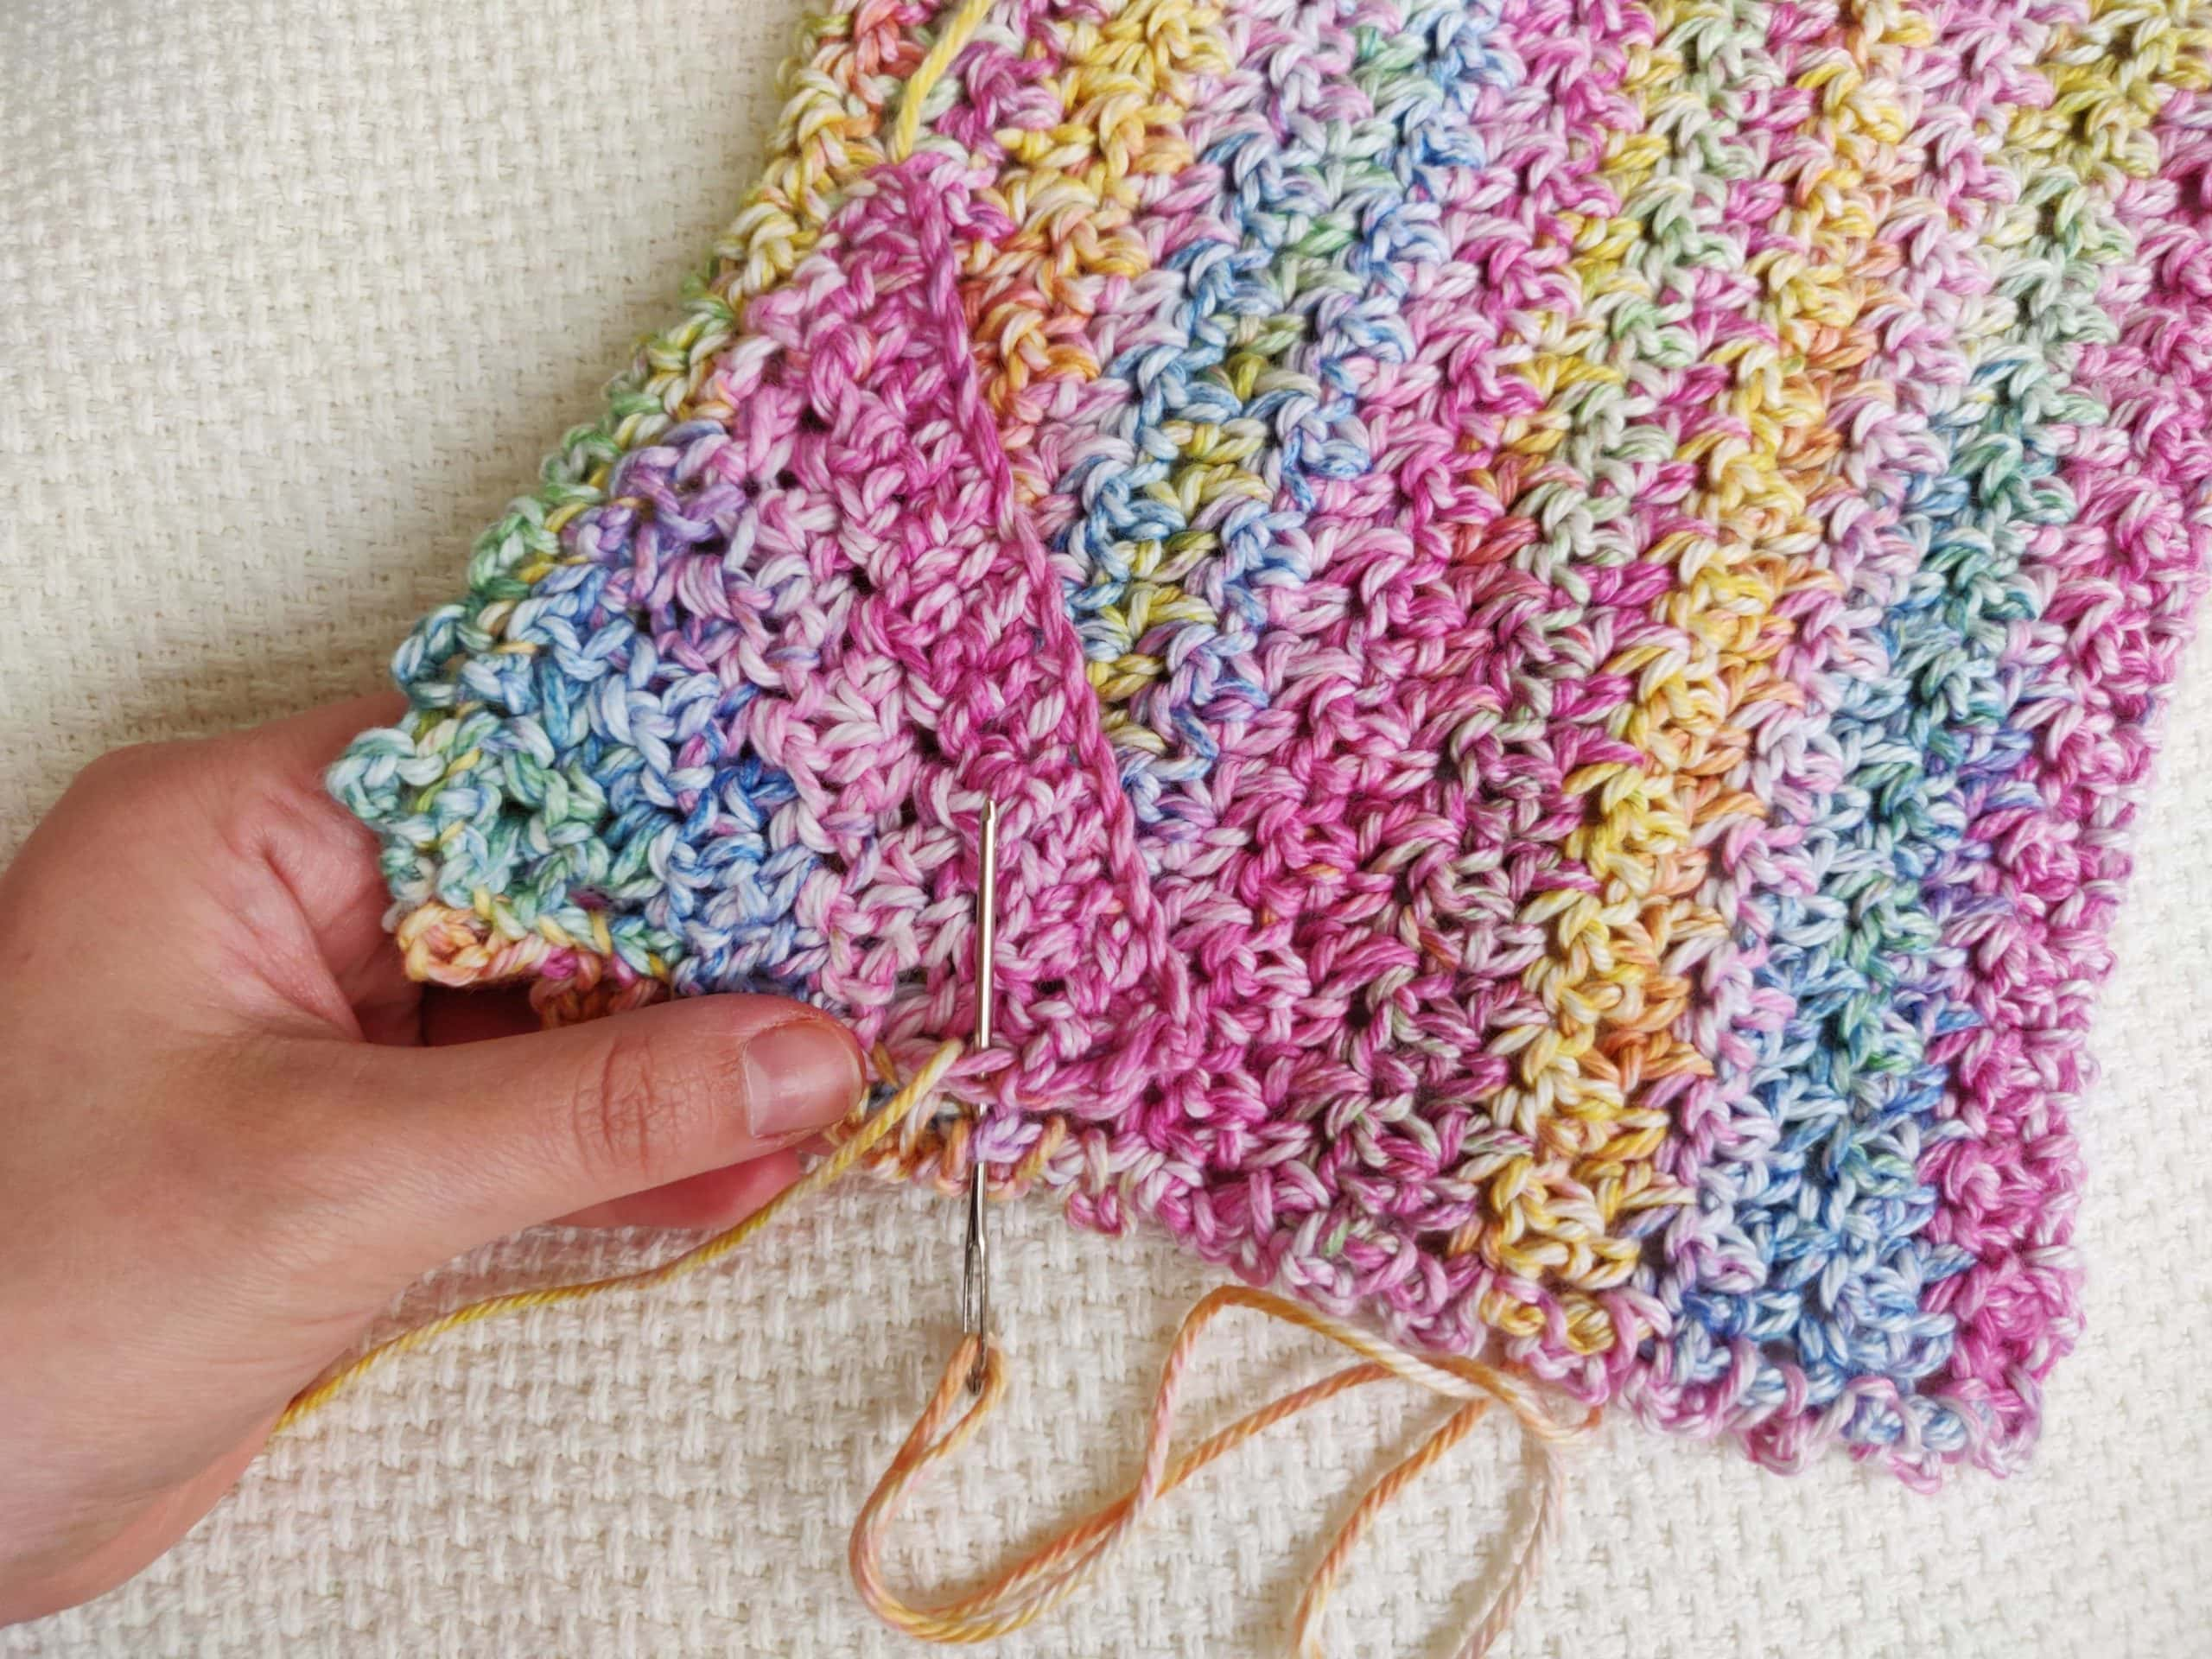 Sewing on a crochet triangle piece to the crochet washcloth corner.